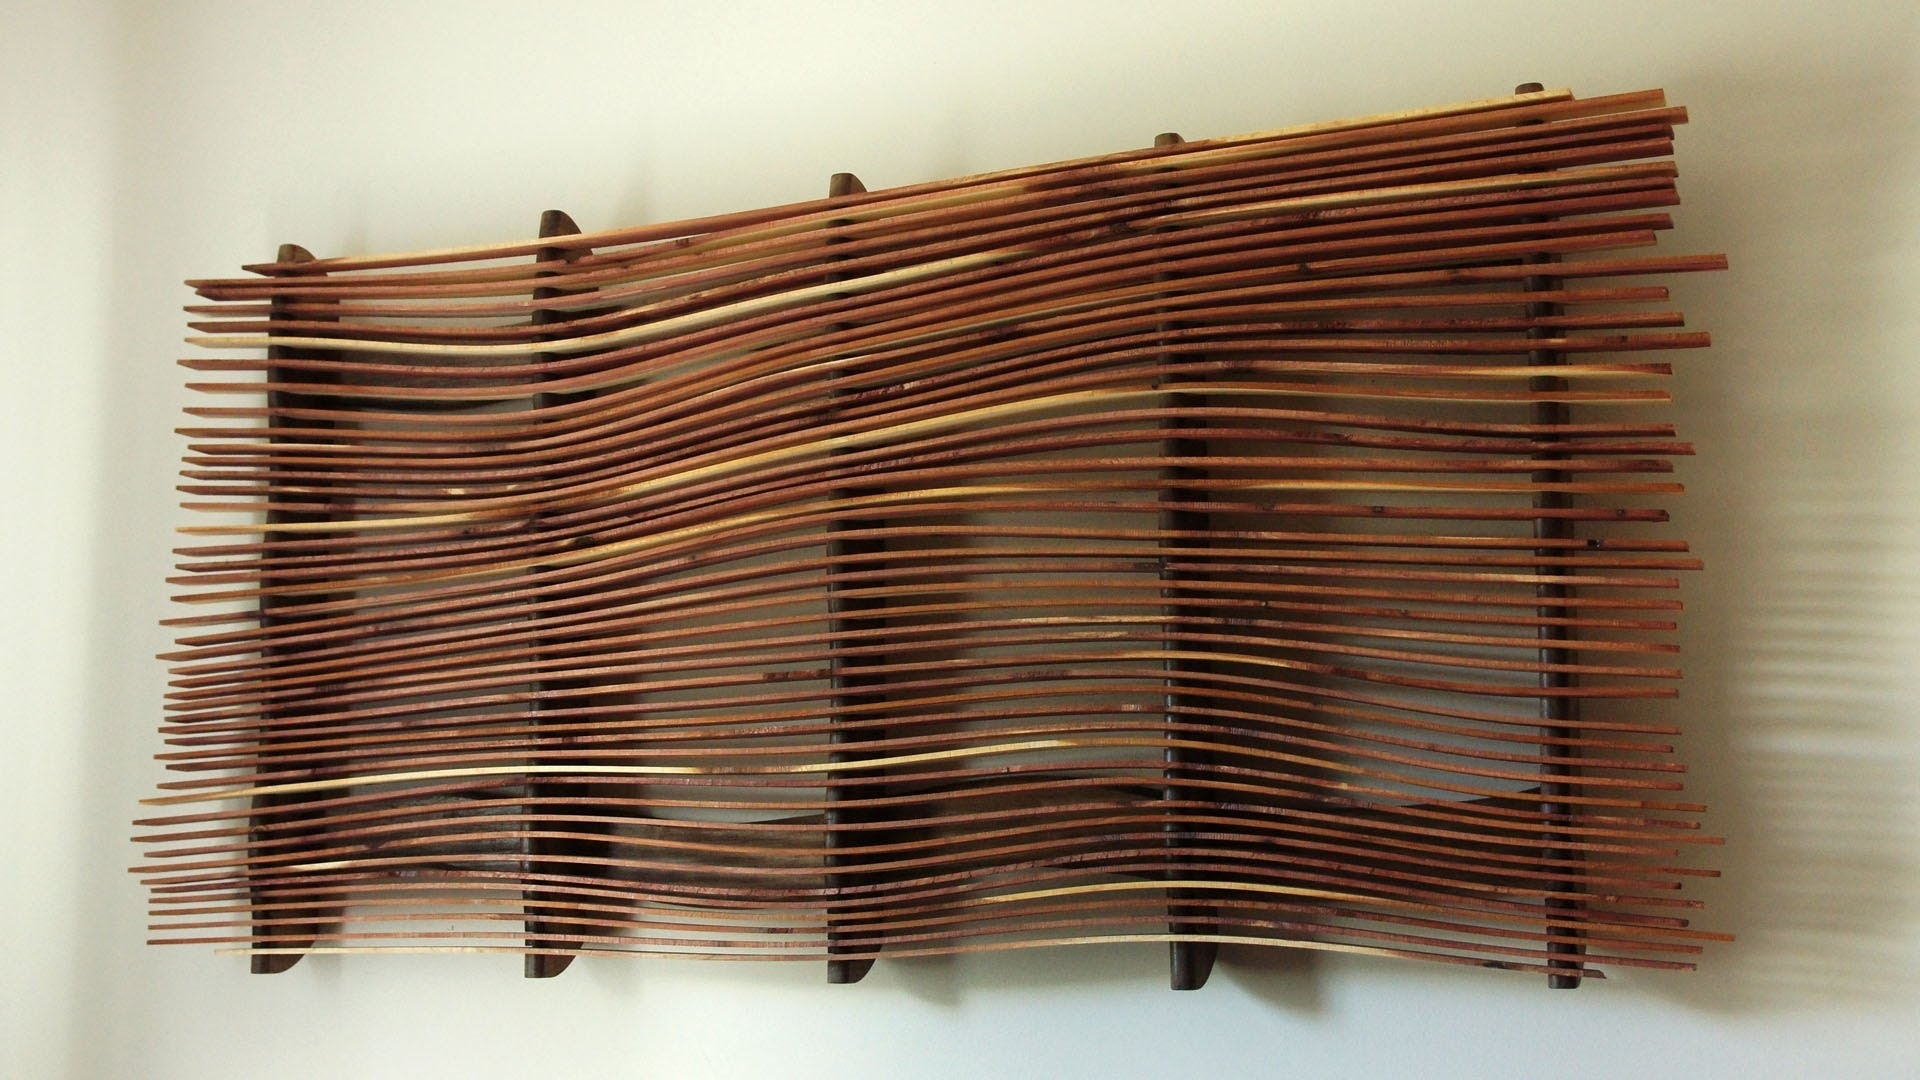 Wall Art From Scrap Wood – Youtube With Most Up To Date Wood Art Wall (View 2 of 15)